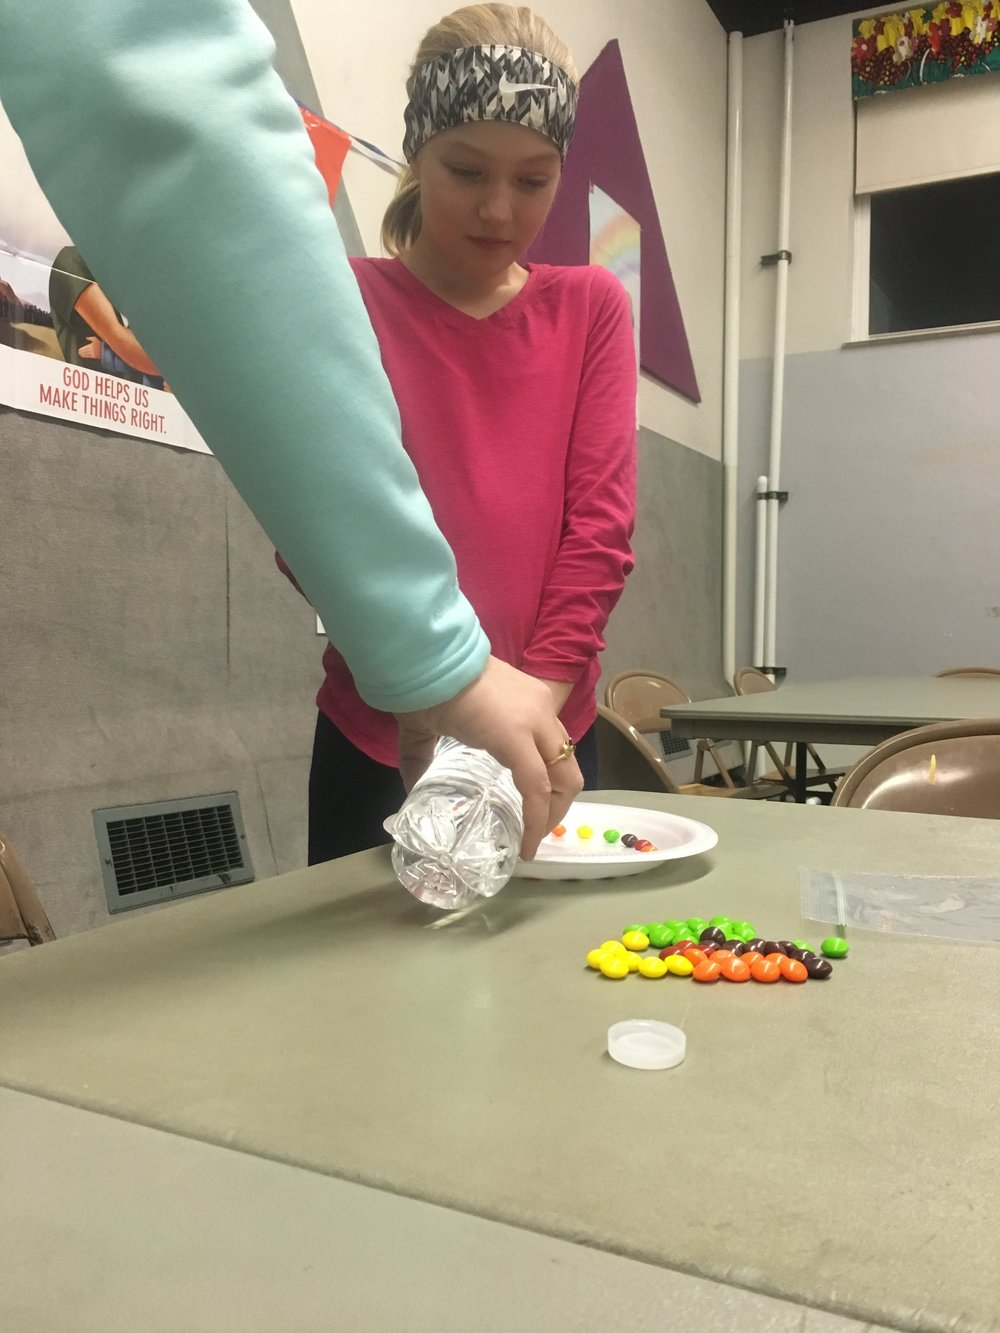 We then poured water in the center of the plate until it went halfway up the skittles.